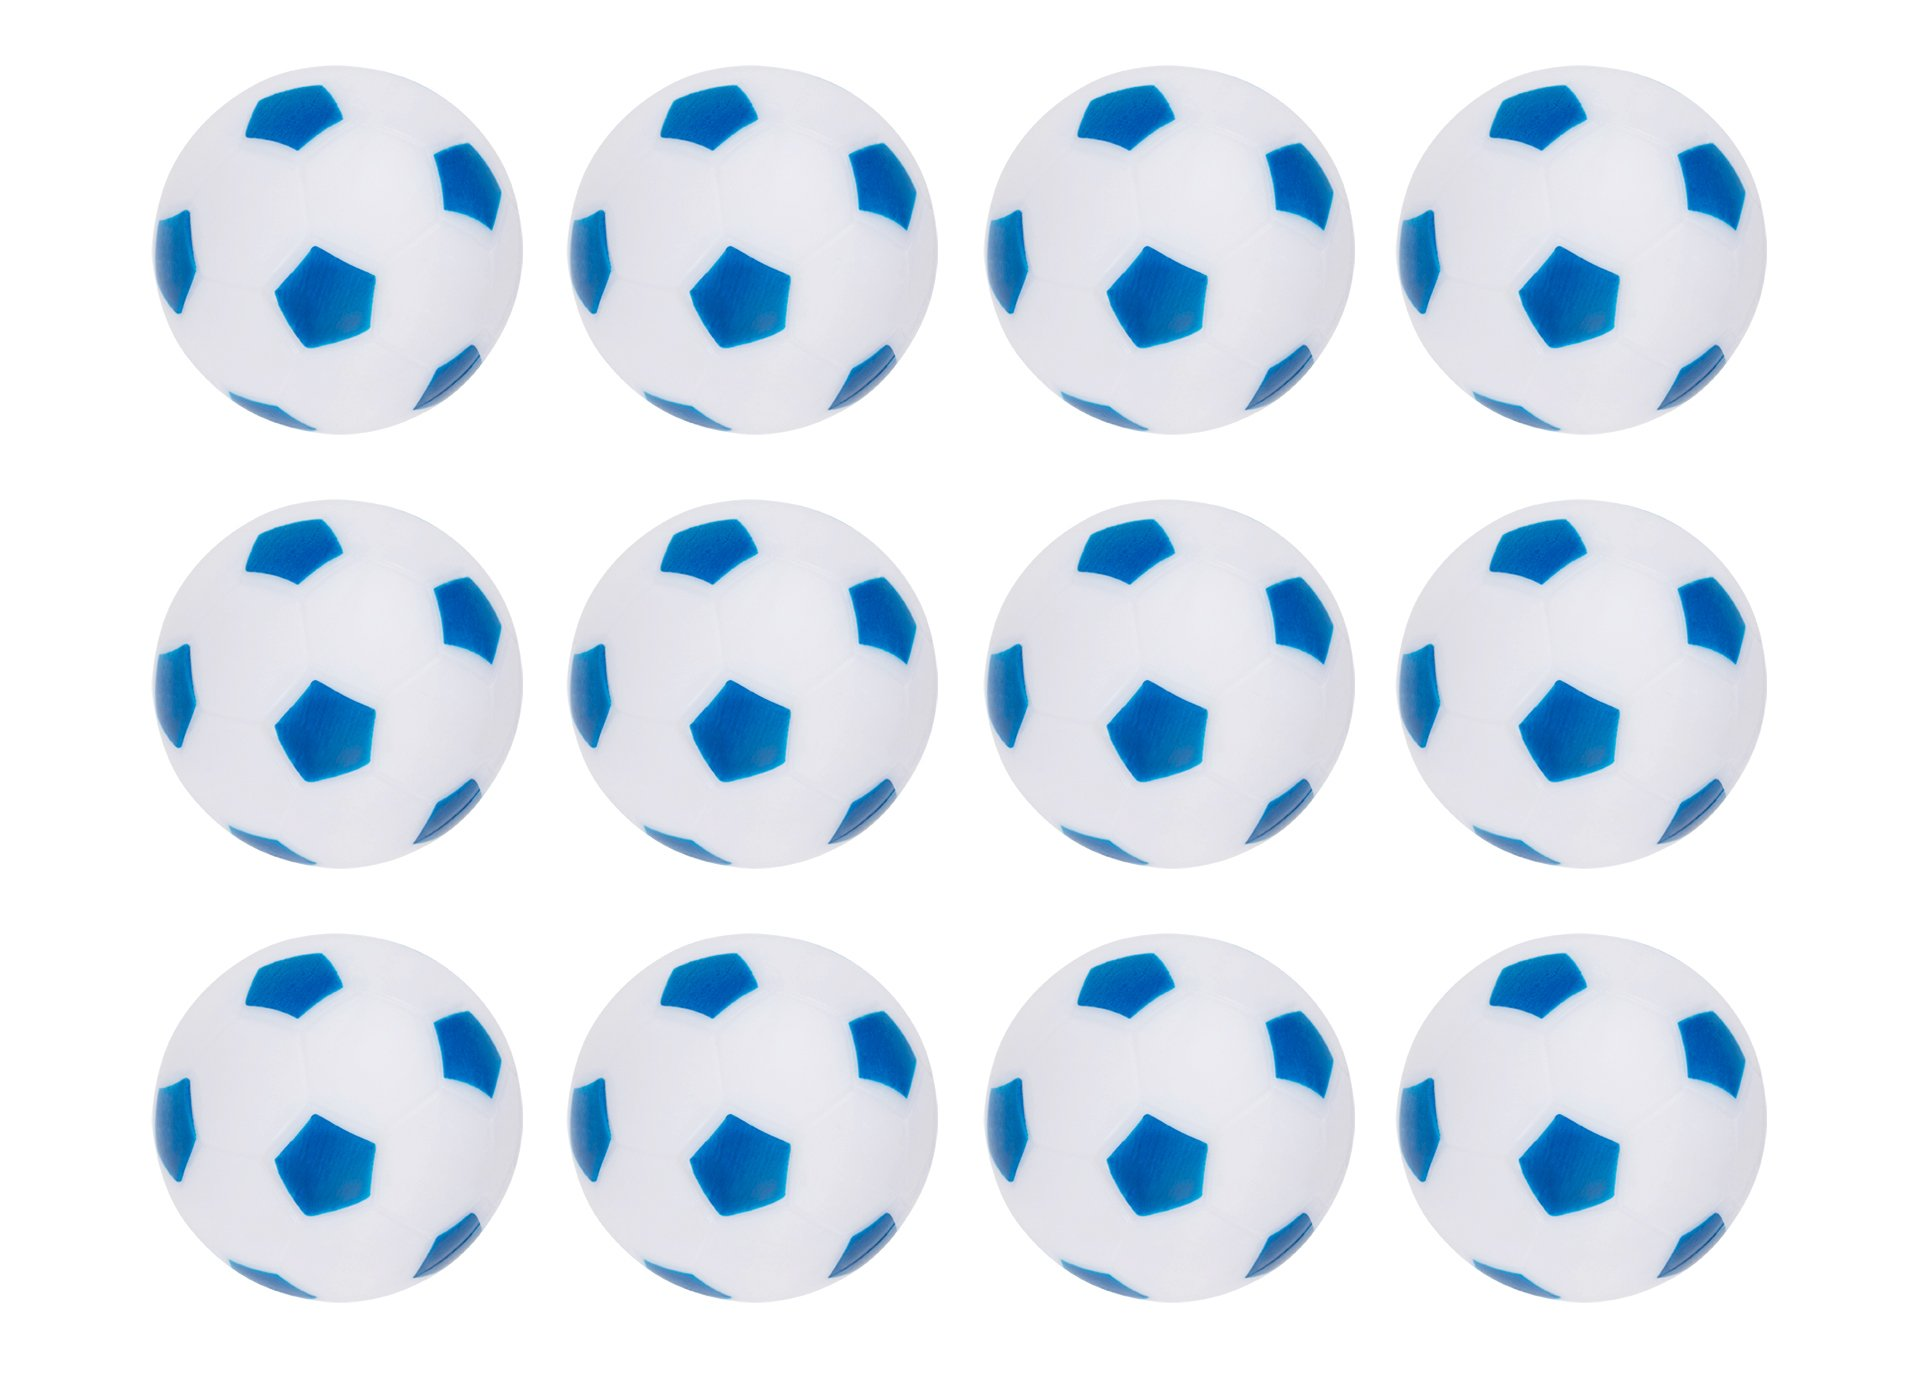 Truscope Sports Foosball Table Soccer Replacement Balls - 36mm - (12 Pack, Blue-White)